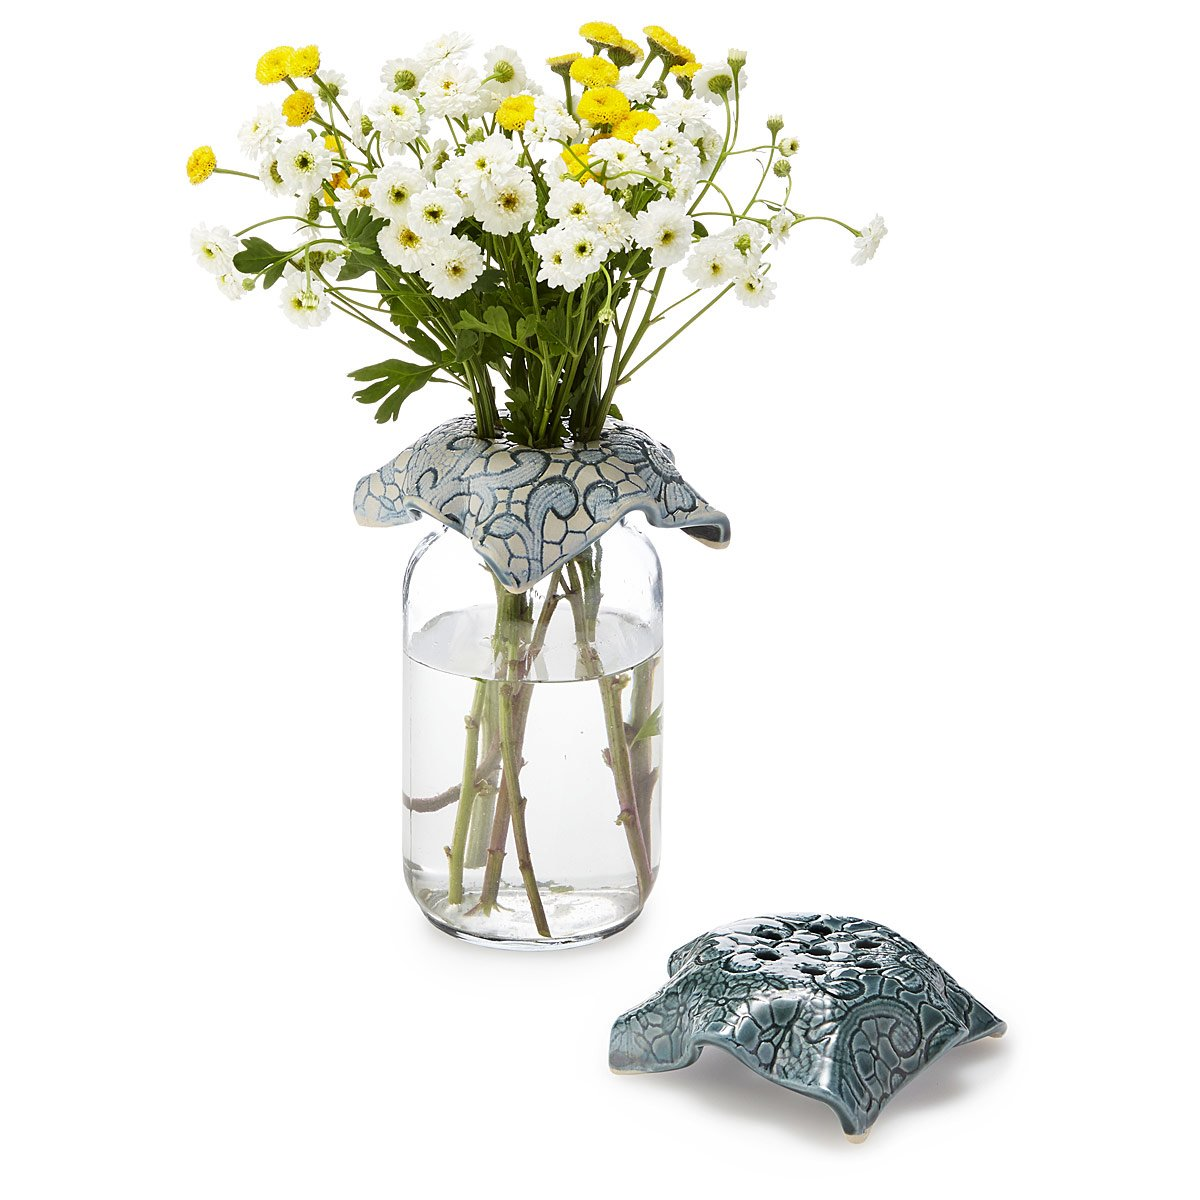 and flowers dma images vases a homes of vase in photos inspiration sale pretty